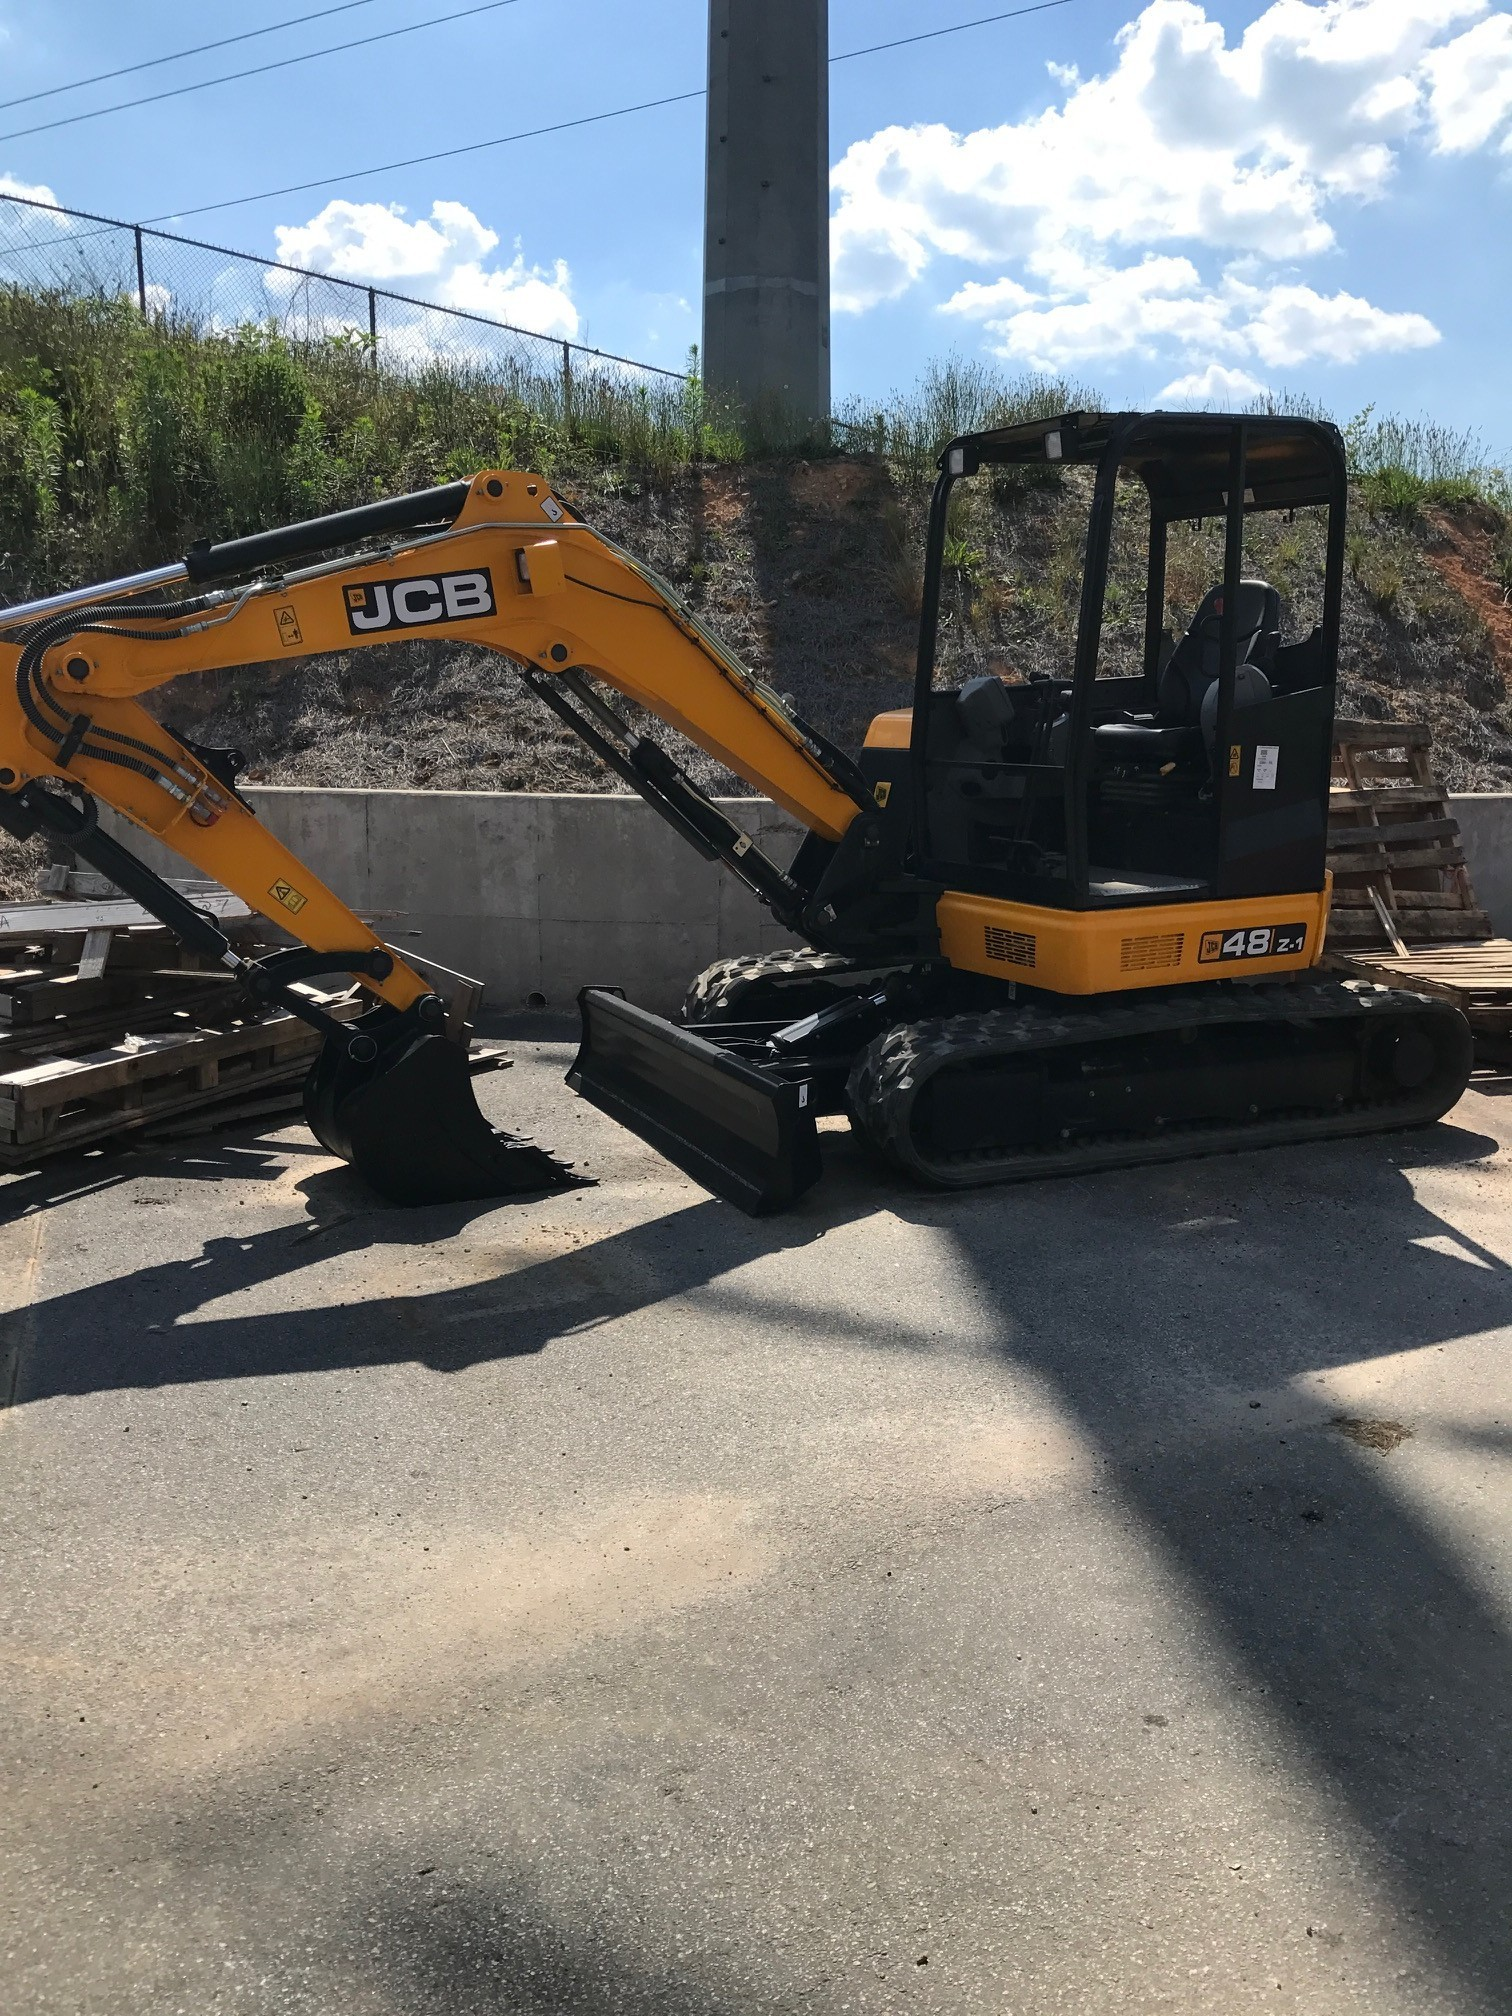 2018 Jcb 48Z-1 For Sale in Marietta, GA - Equipment Trader